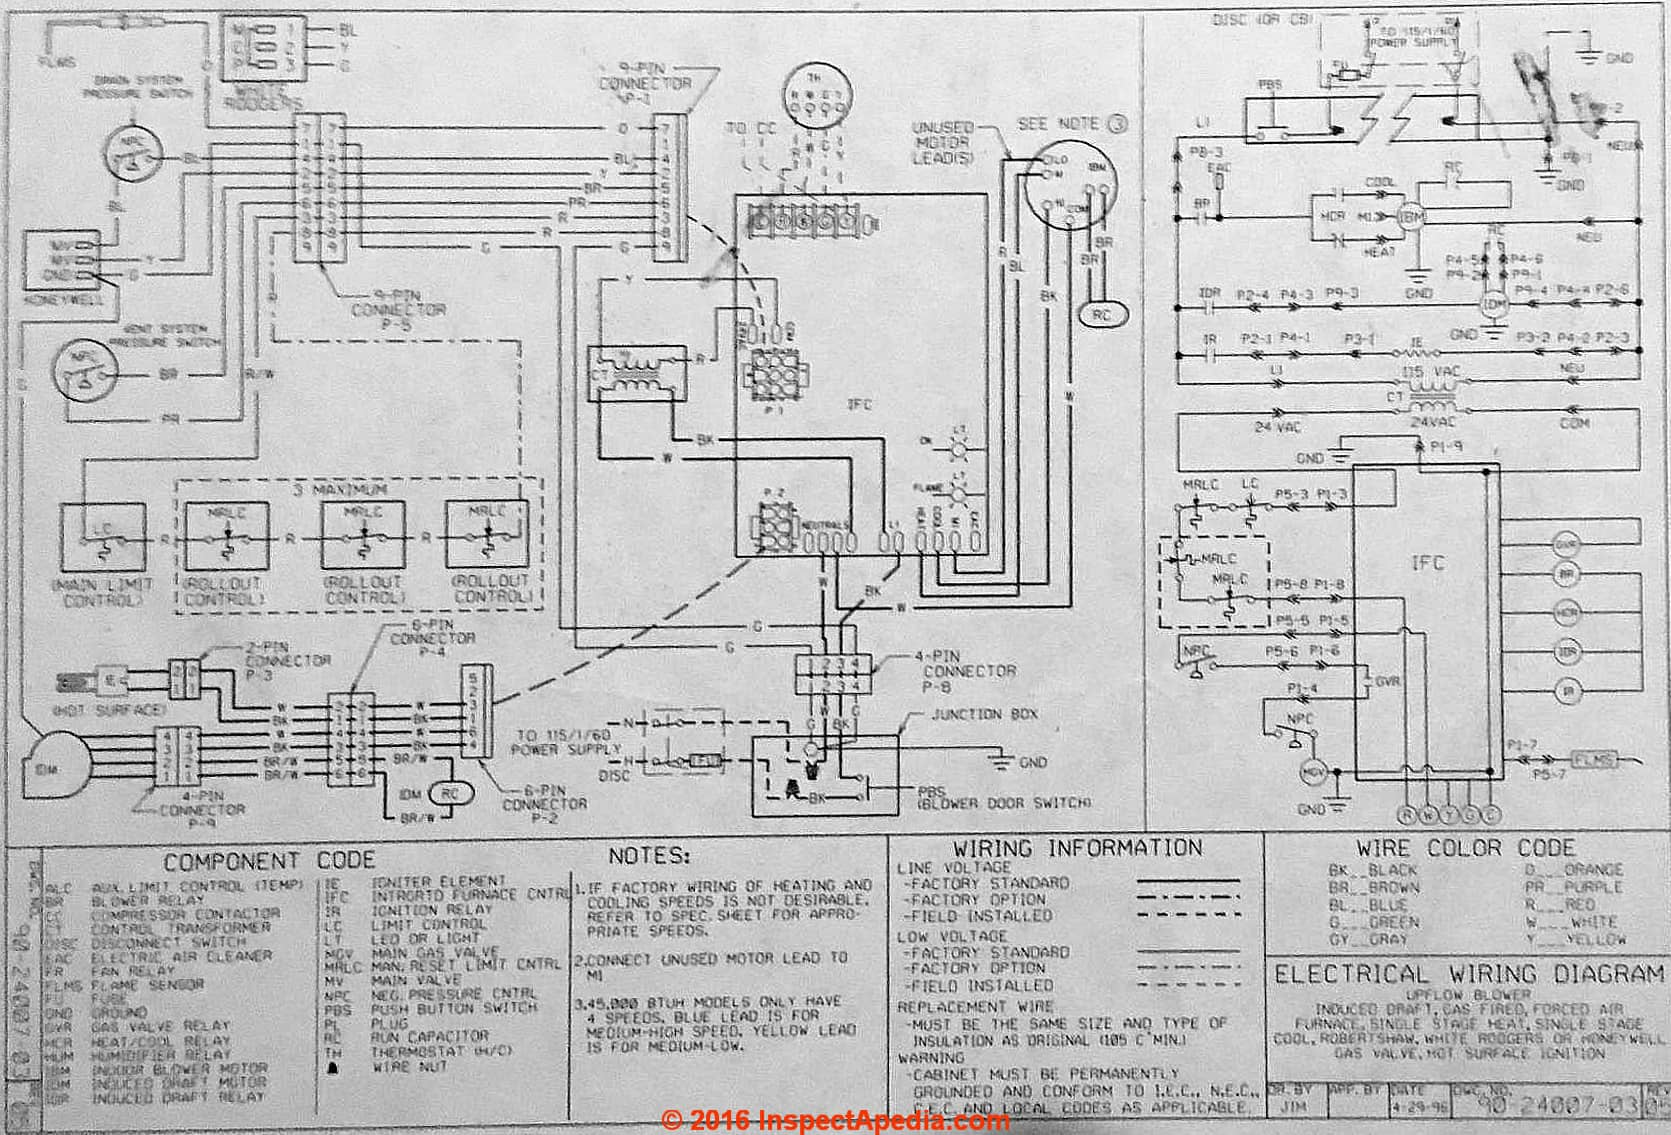 Ground Wiring Diagram Guitar Auto Electrical Wiring Diagram Rh Sistemagroup  Me On 1945 Ford Gpw Wiring Diagram For Nirvana Heat Pump Wiring Diagram 32  ...